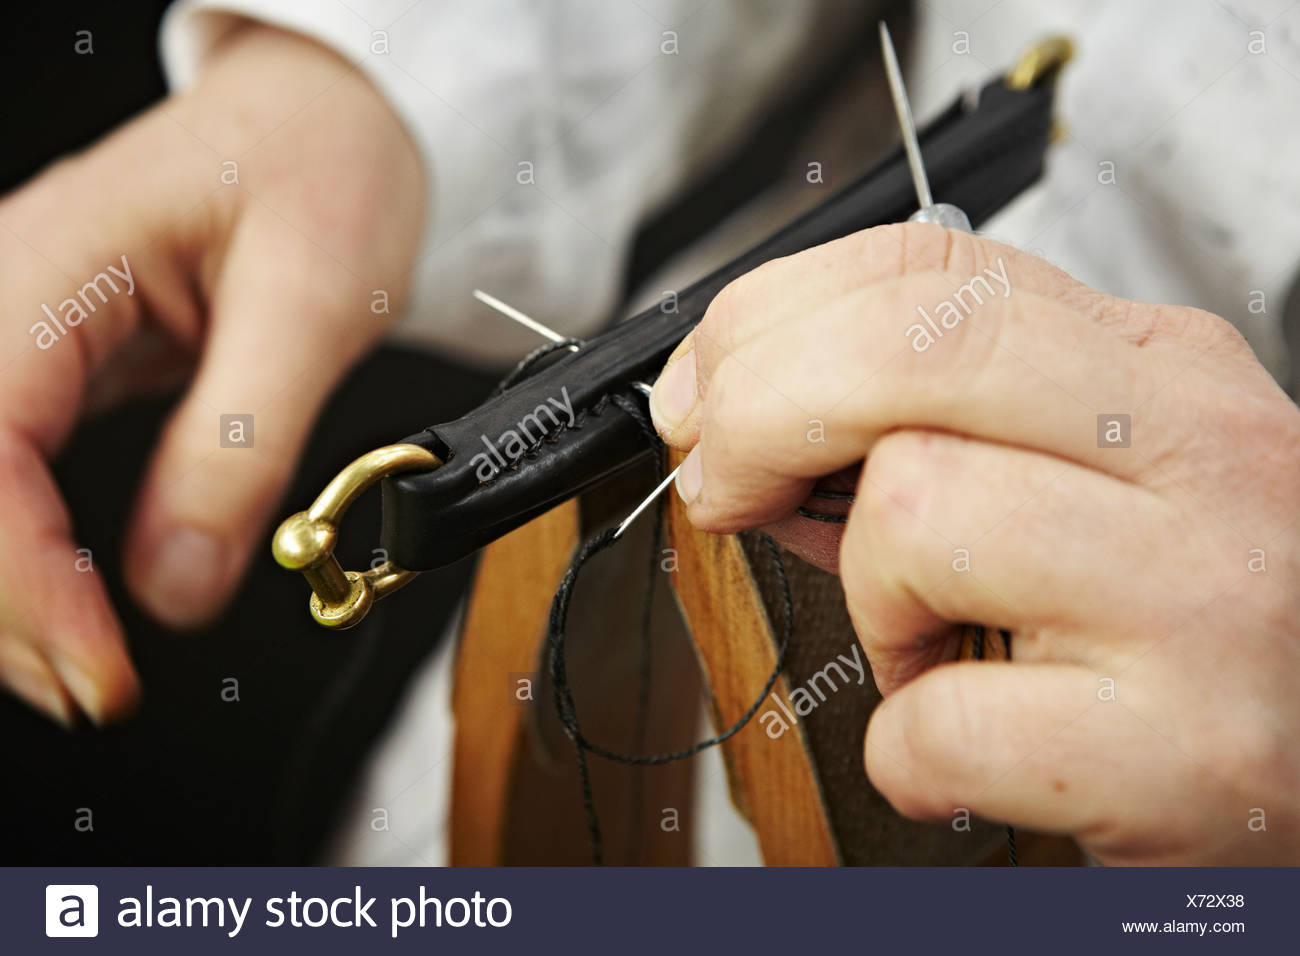 Close up of hands stitching leather - Stock Image